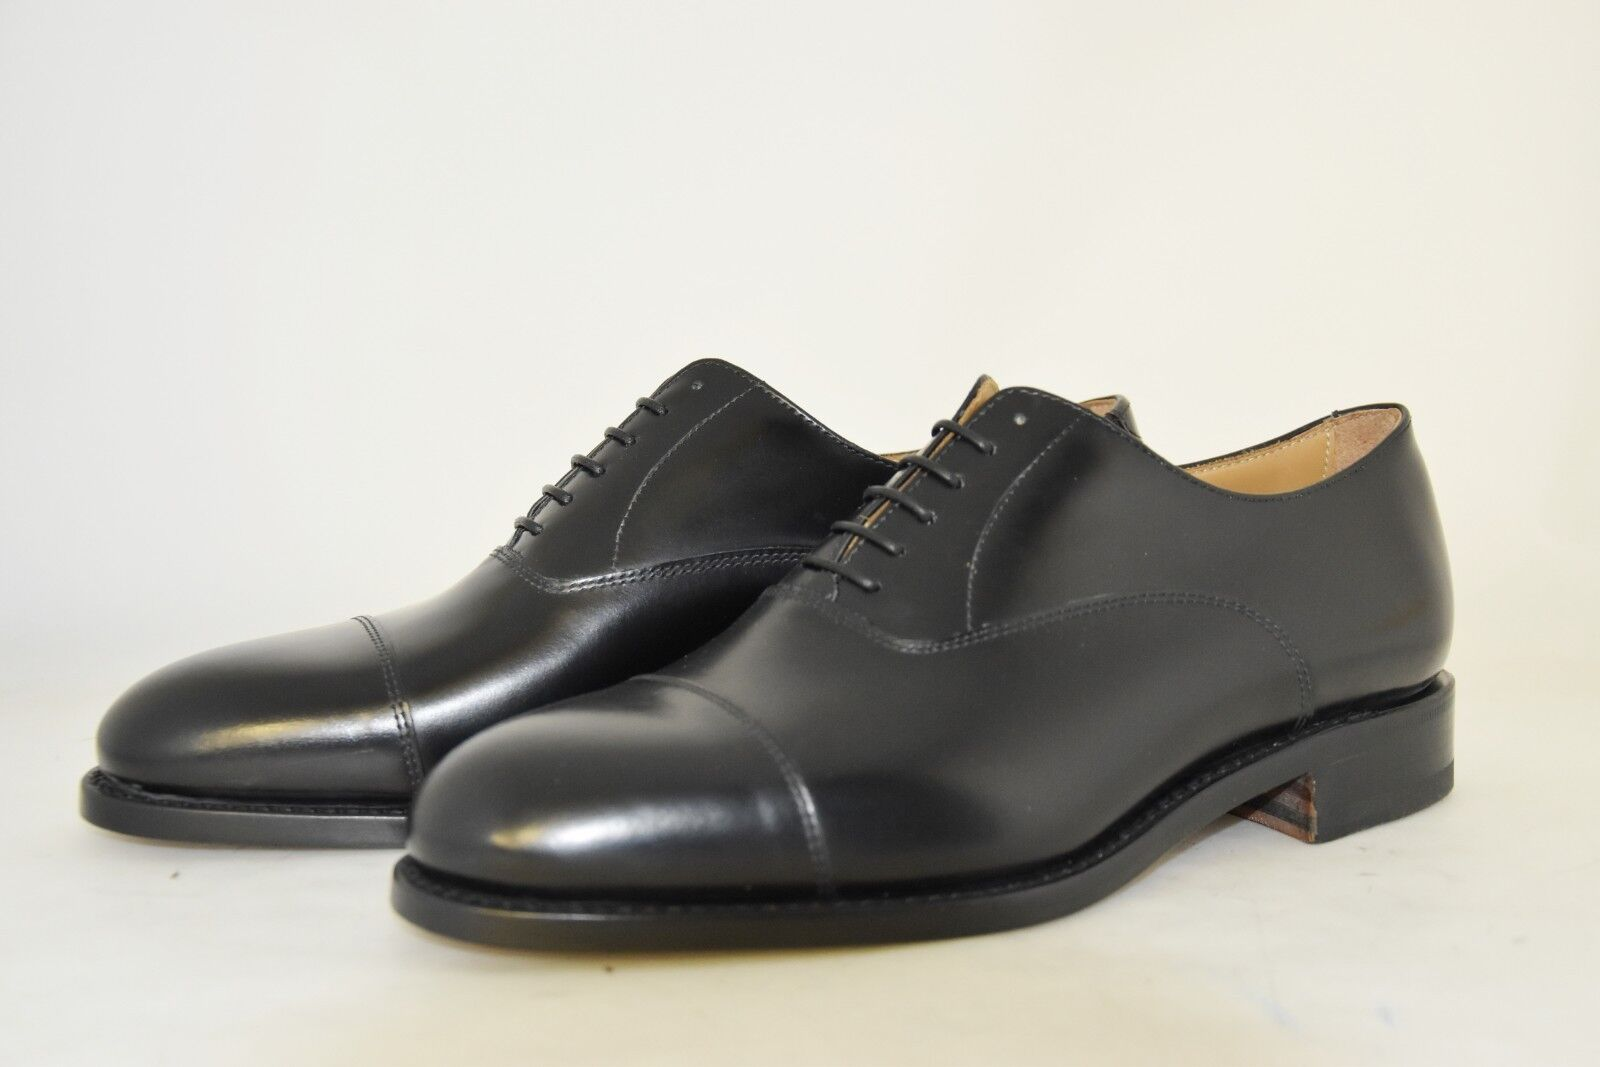 MAN-7eu-8us-OXFORD CAP TOE -FRANCESINA-nero CALF-VITELLO NERO-LEATHER SOLE